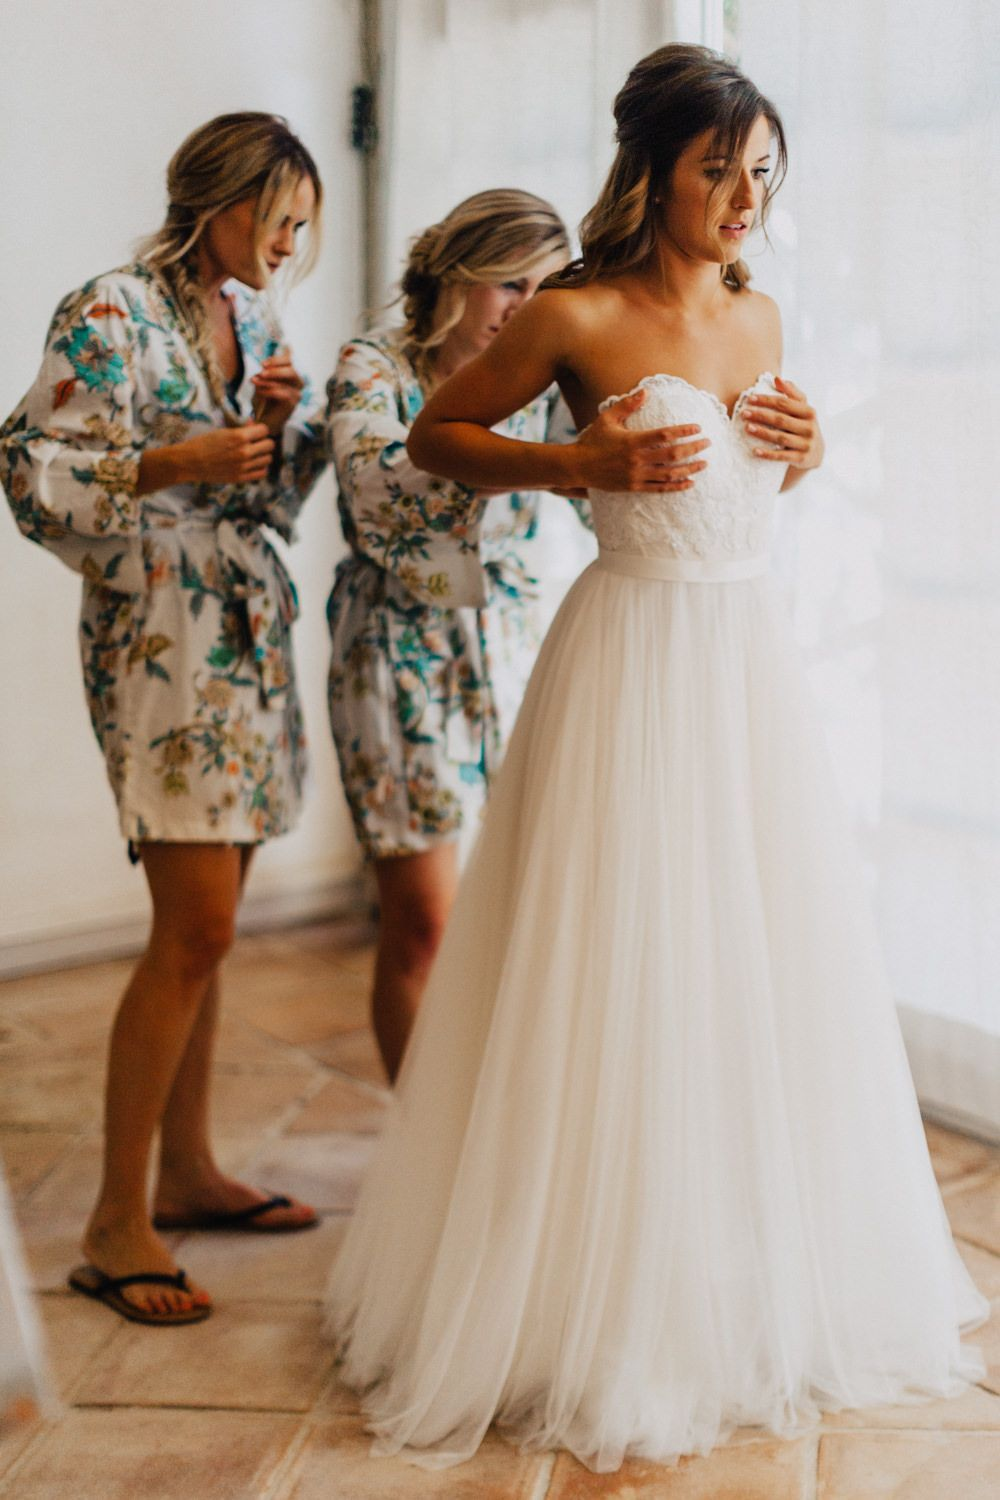 Long wedding reception dresses for the bride  Gorgeous Aline Strapless White Long Wedding Dress from modsele